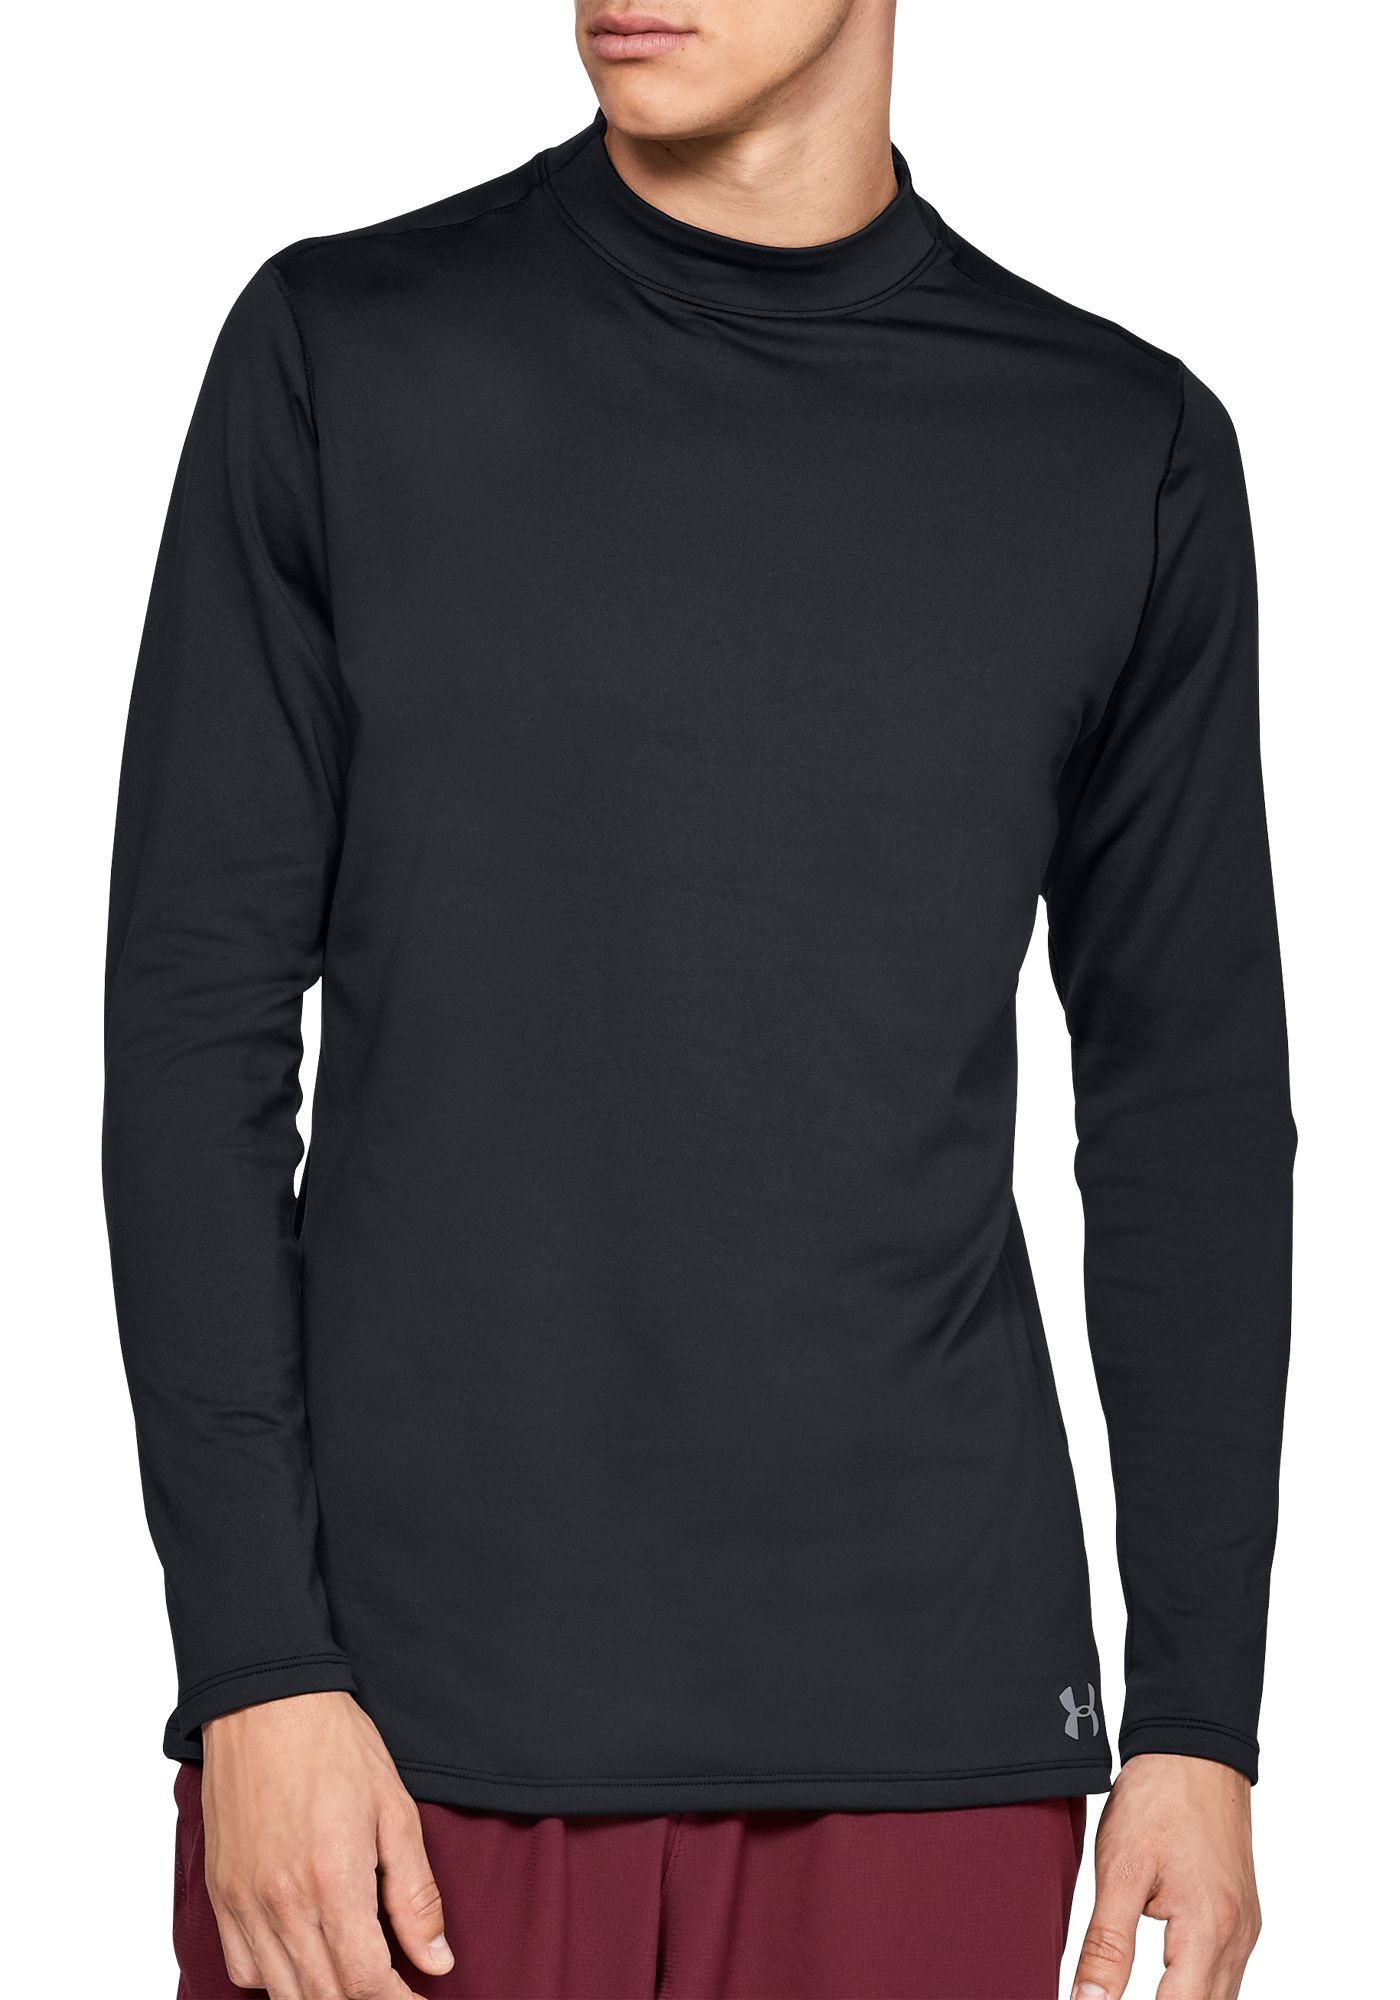 Under Armour Men's ColdGear Armour Mock Neck Long Sleeve Shirt